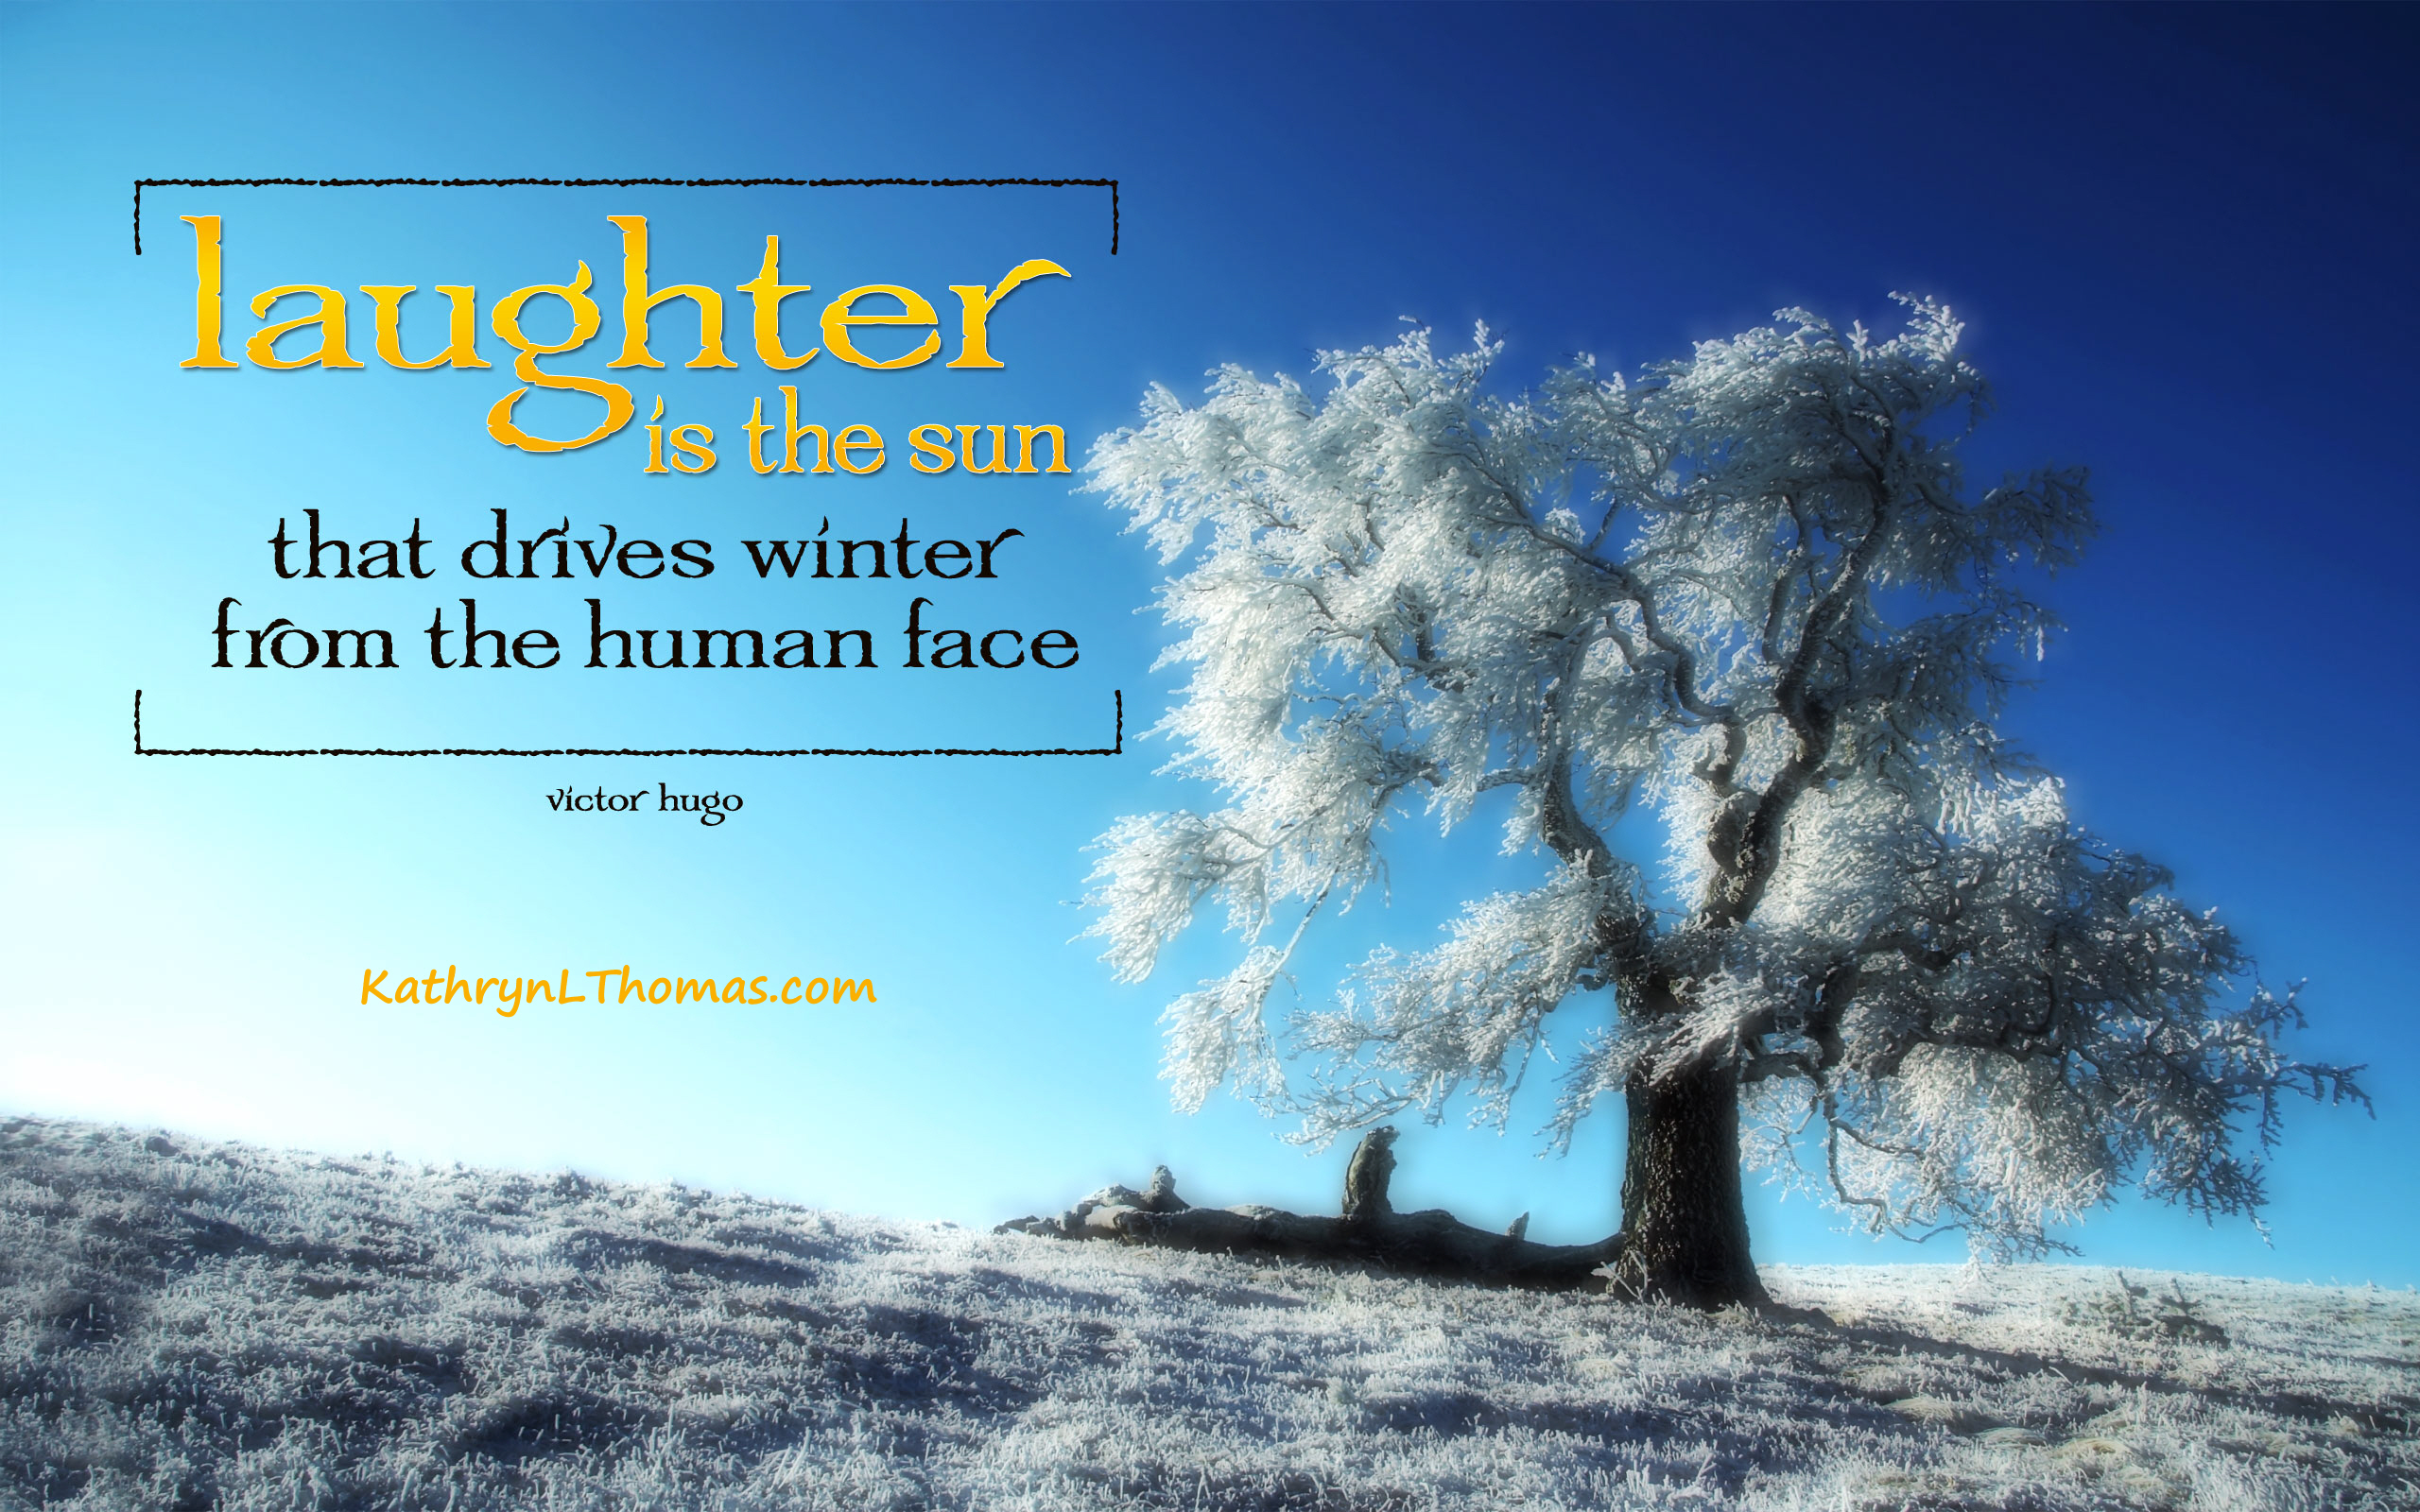 Quote about laughter - Victor Hugo